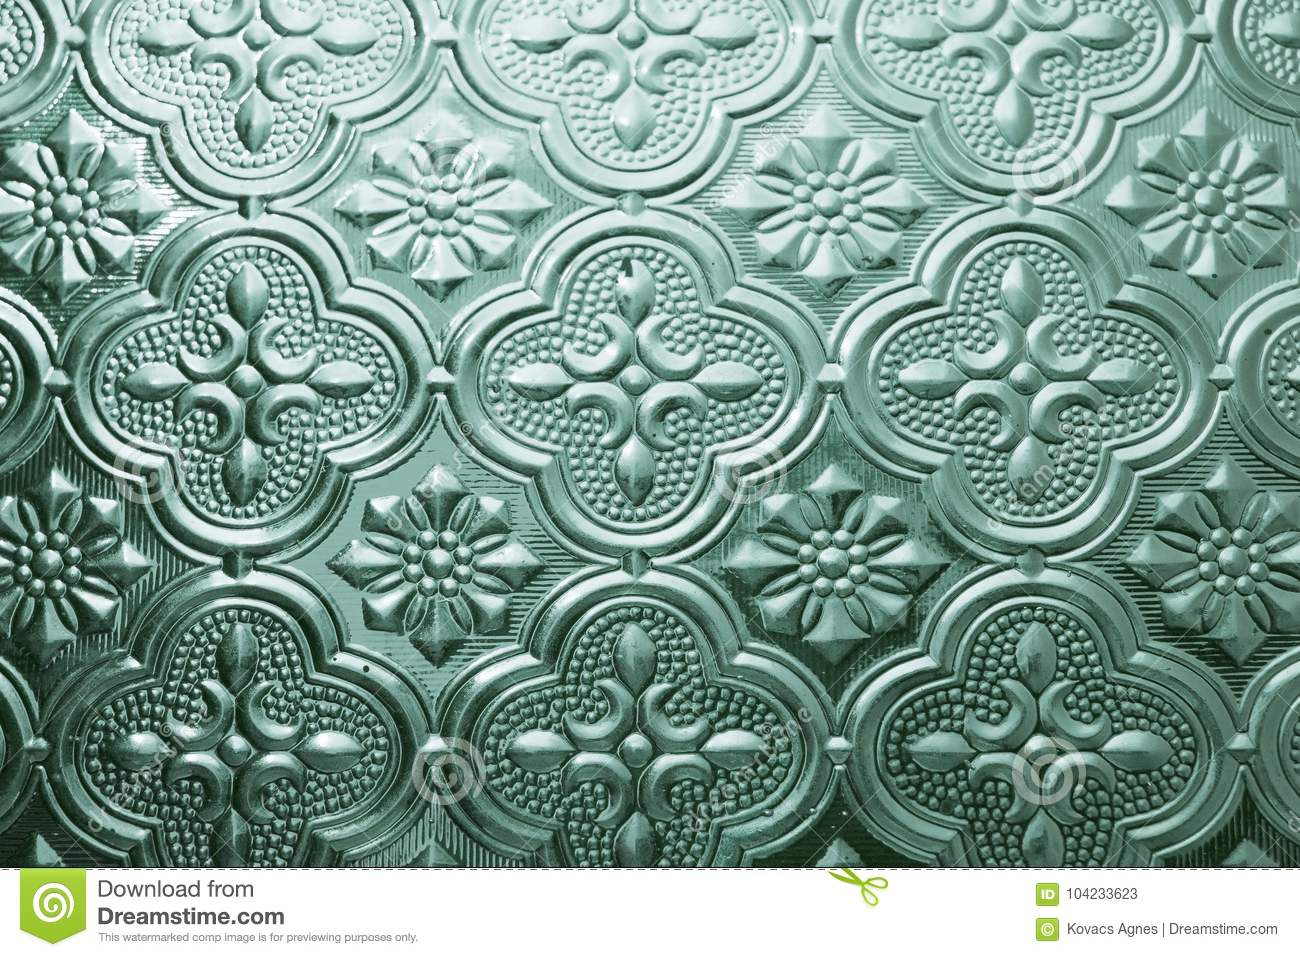 Colorful seamless texture. Glass background. Interior wall decoration 3D wall pattern abstract floral glass shapes